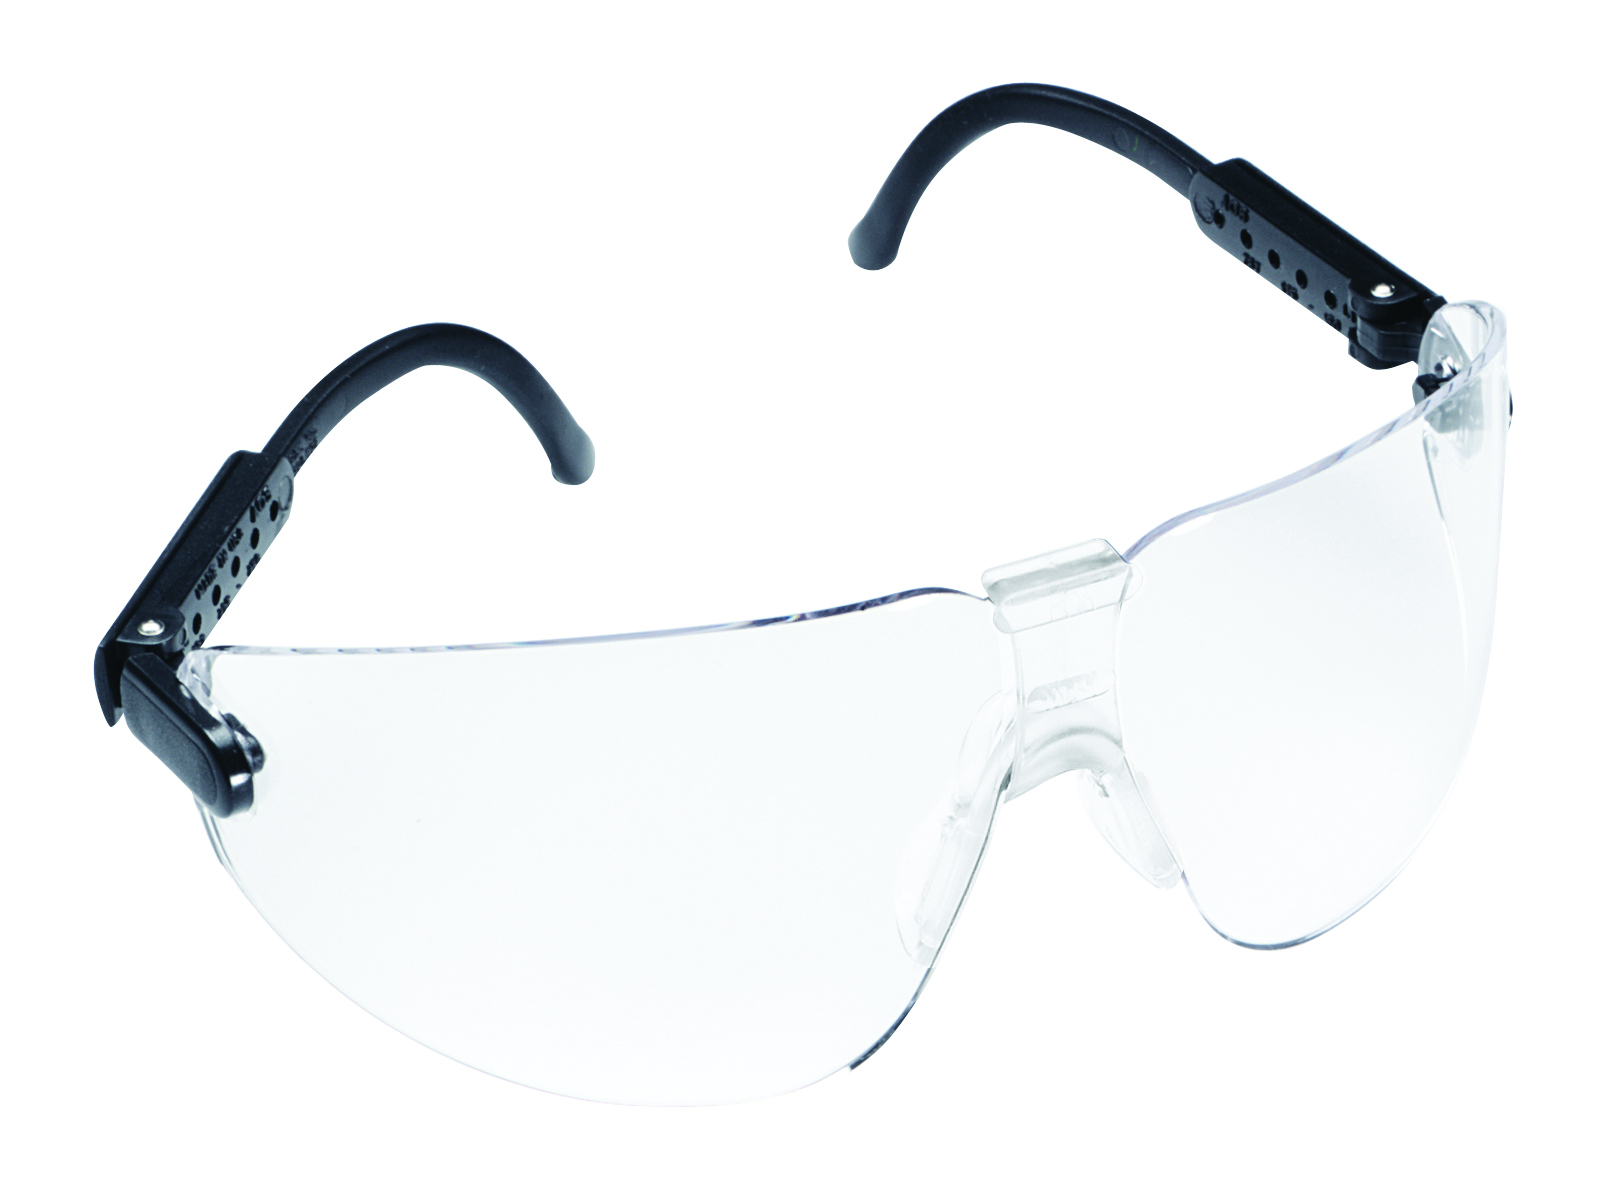 15200-00000-20 - 3M™ Lexa™ Safety Eyewear-Black Temple, Clear Lens, Size Medium -----UOM: 1/EA